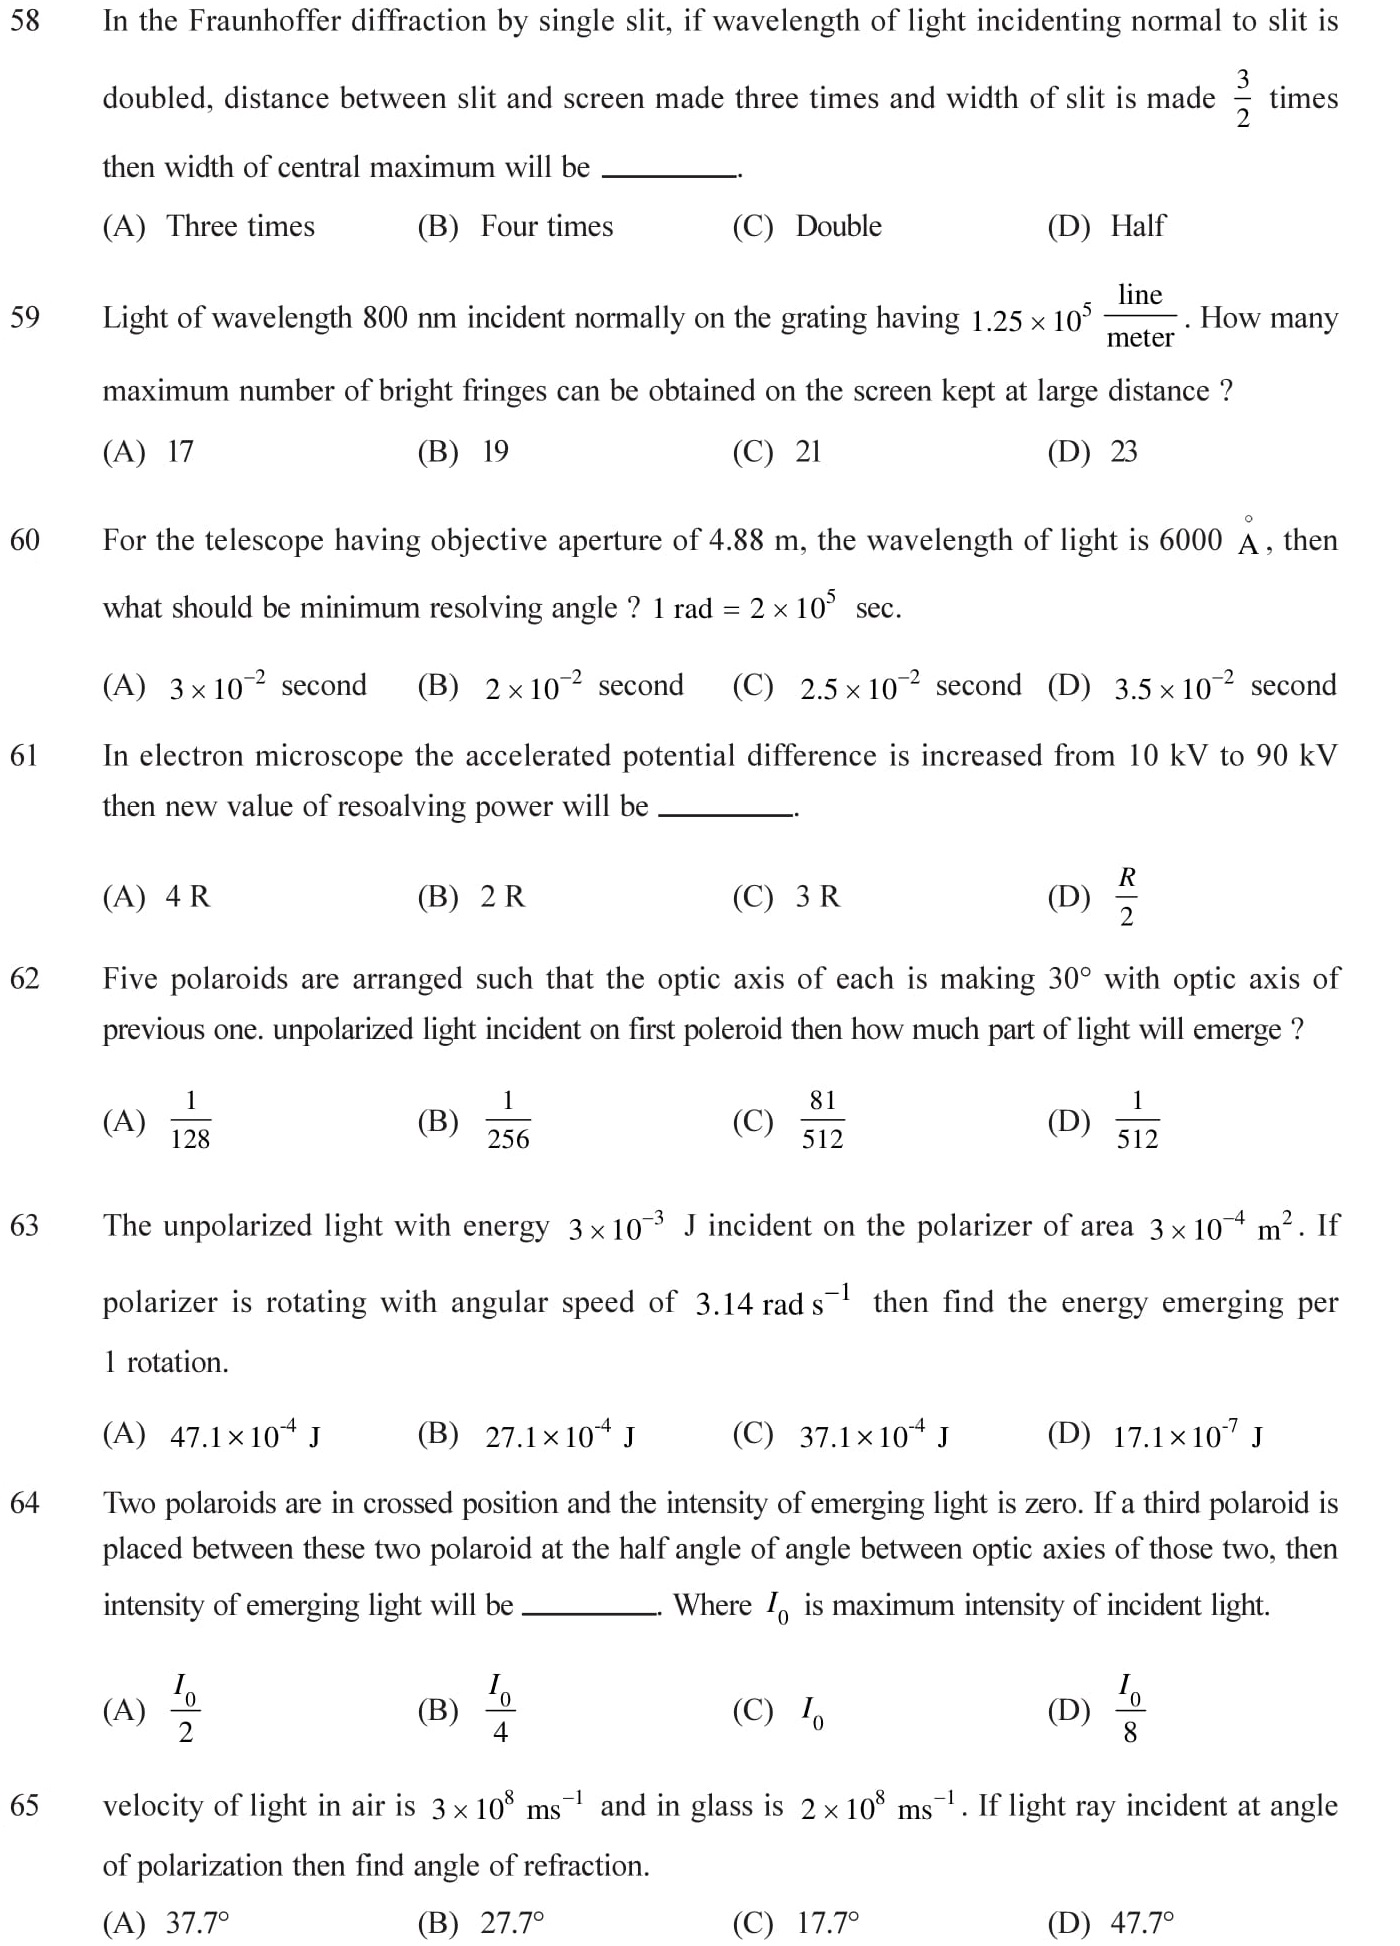 Practice questions on wave optices with answers